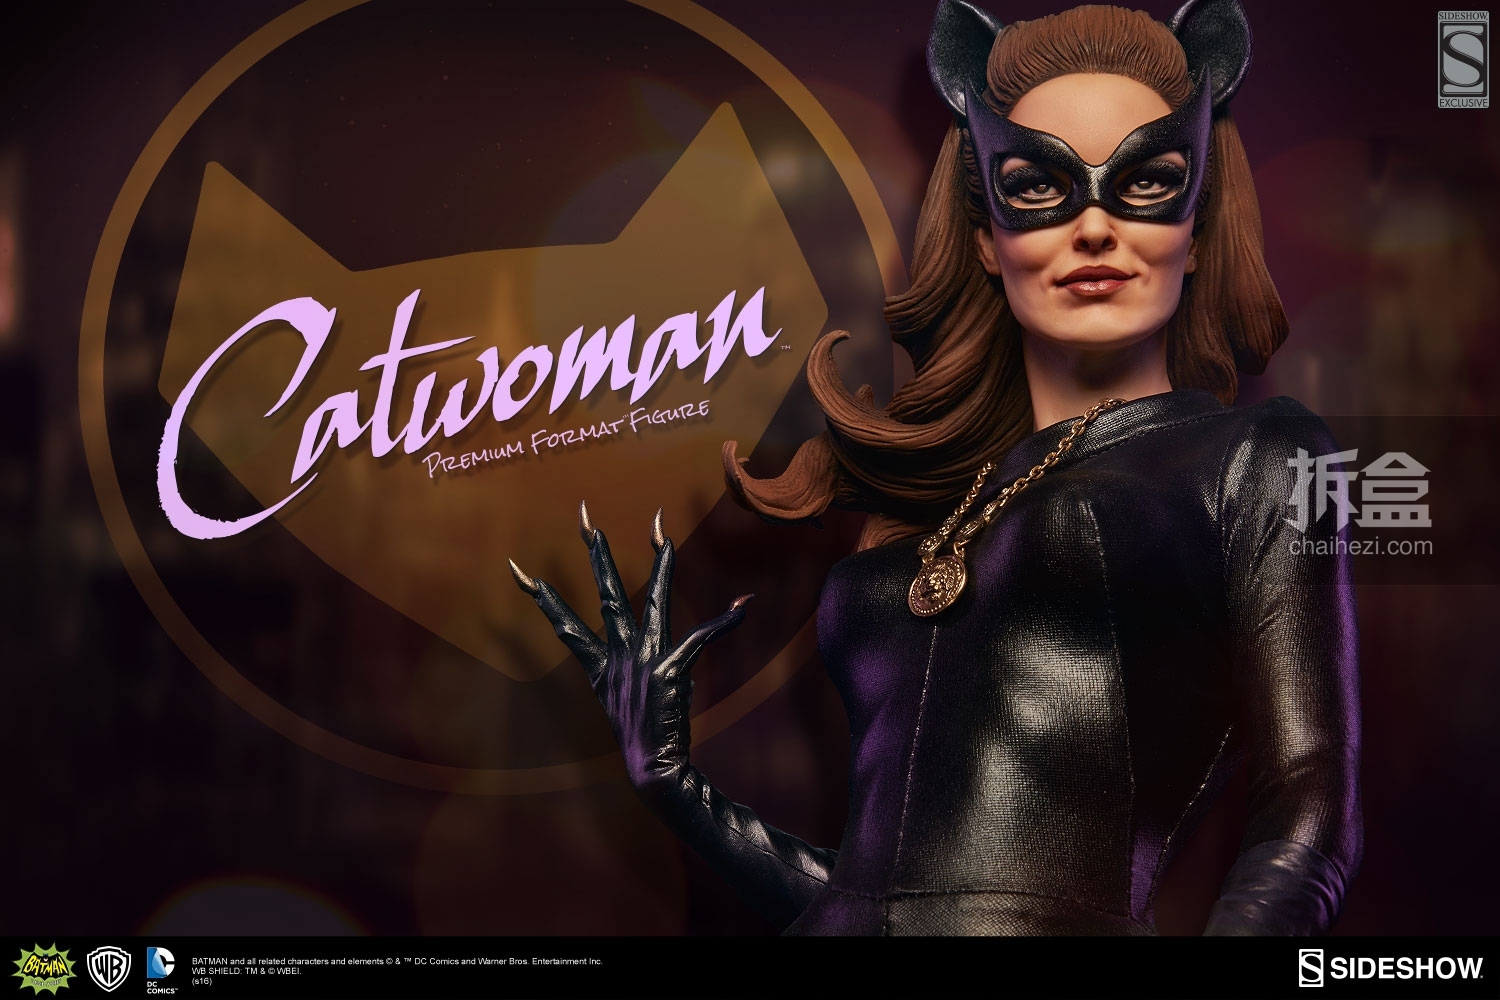 sideshow-catwoman-pf